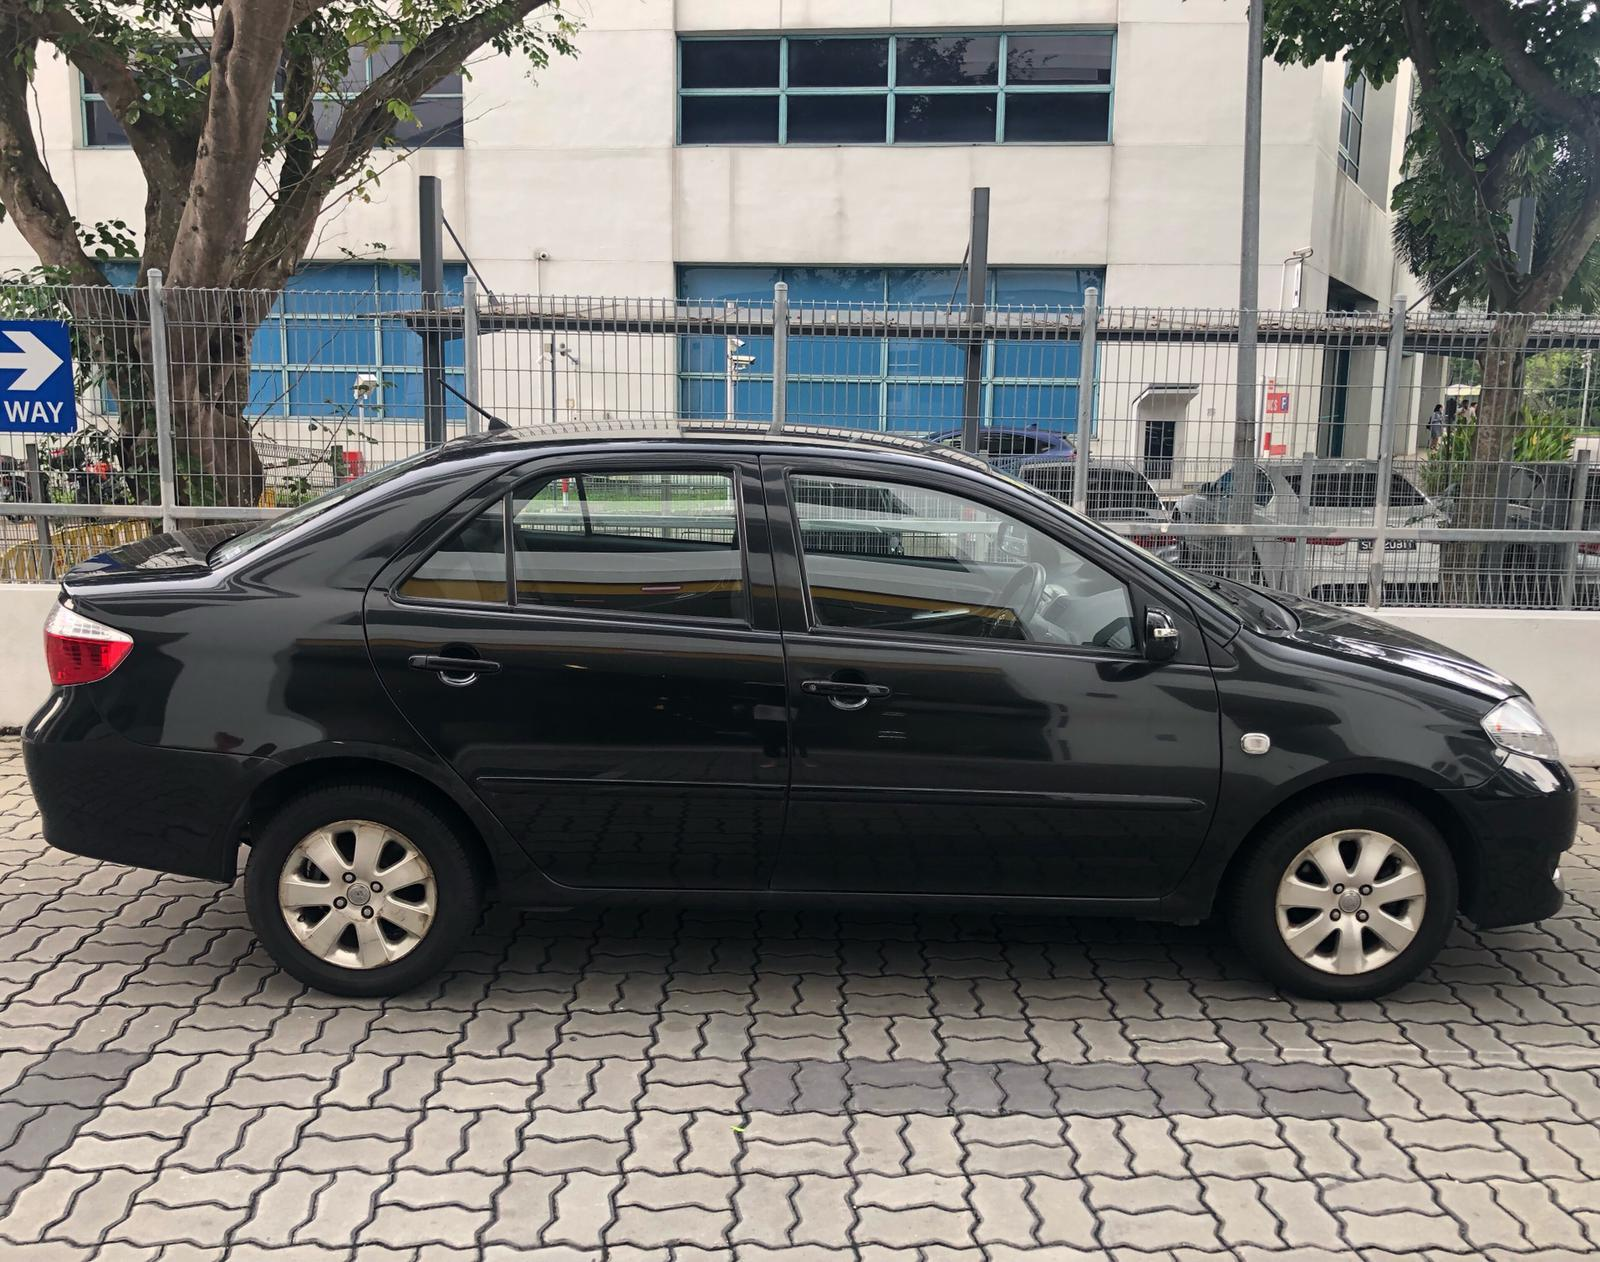 TOYOTA VIOS 1.6a  50$ Toyota Vios Wish Altis Car Axio Premio Allion Camry Estima Honda Jazz Fit Stream Civic Cars Hyundai Avante Mazda 3 2 For Rent Lease To Own Grab Rental Gojek Or Personal Use Low price and Cheap